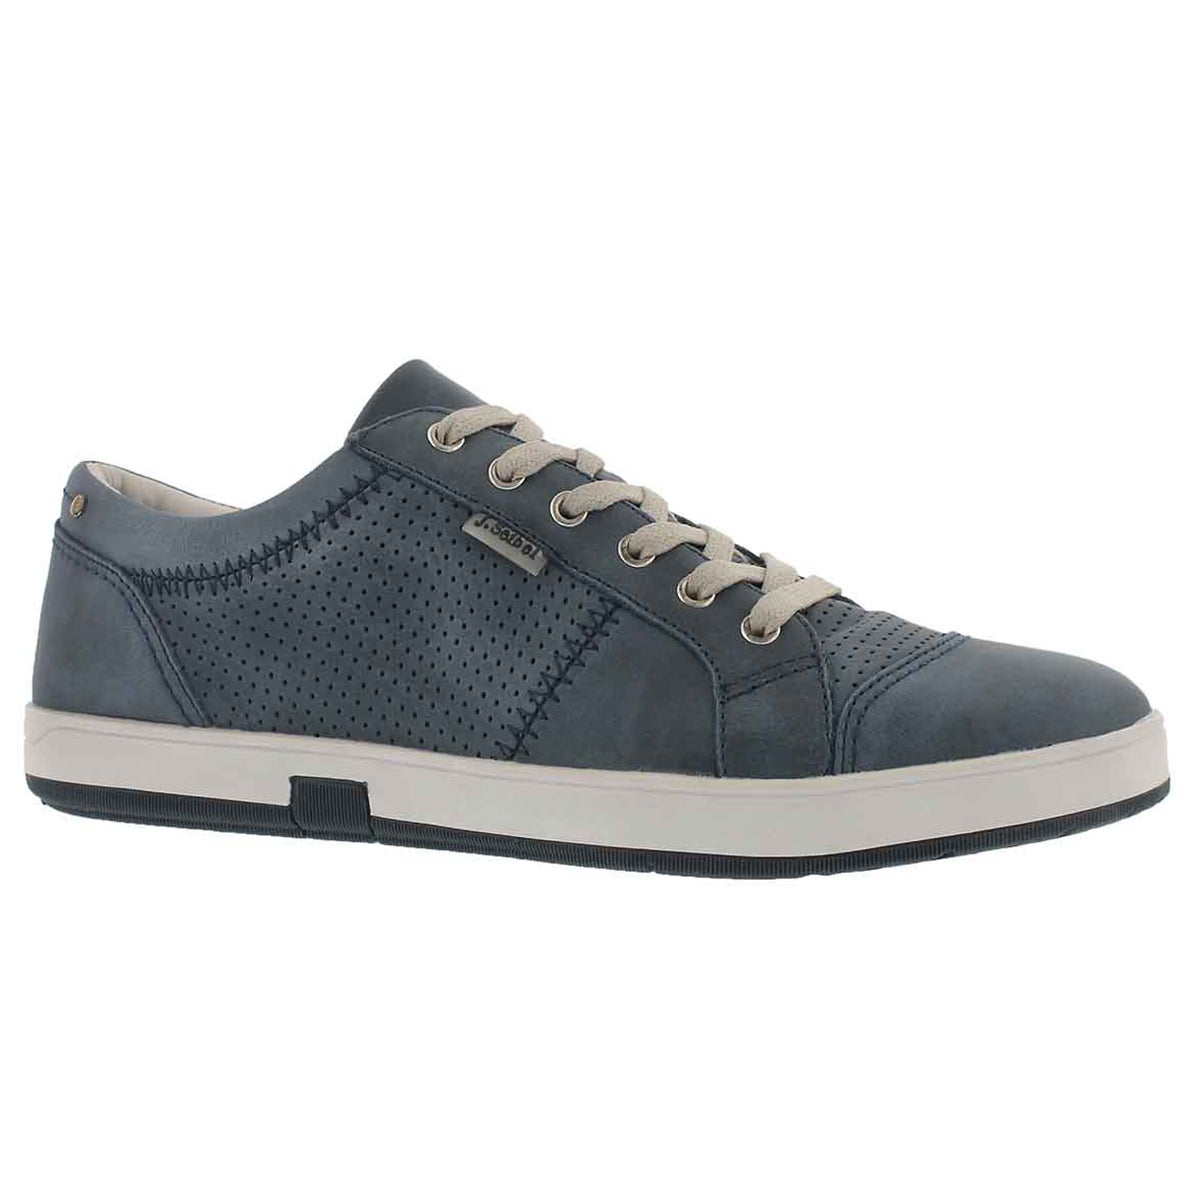 Men's GATTEO 01 ocean leather lace up sneakers